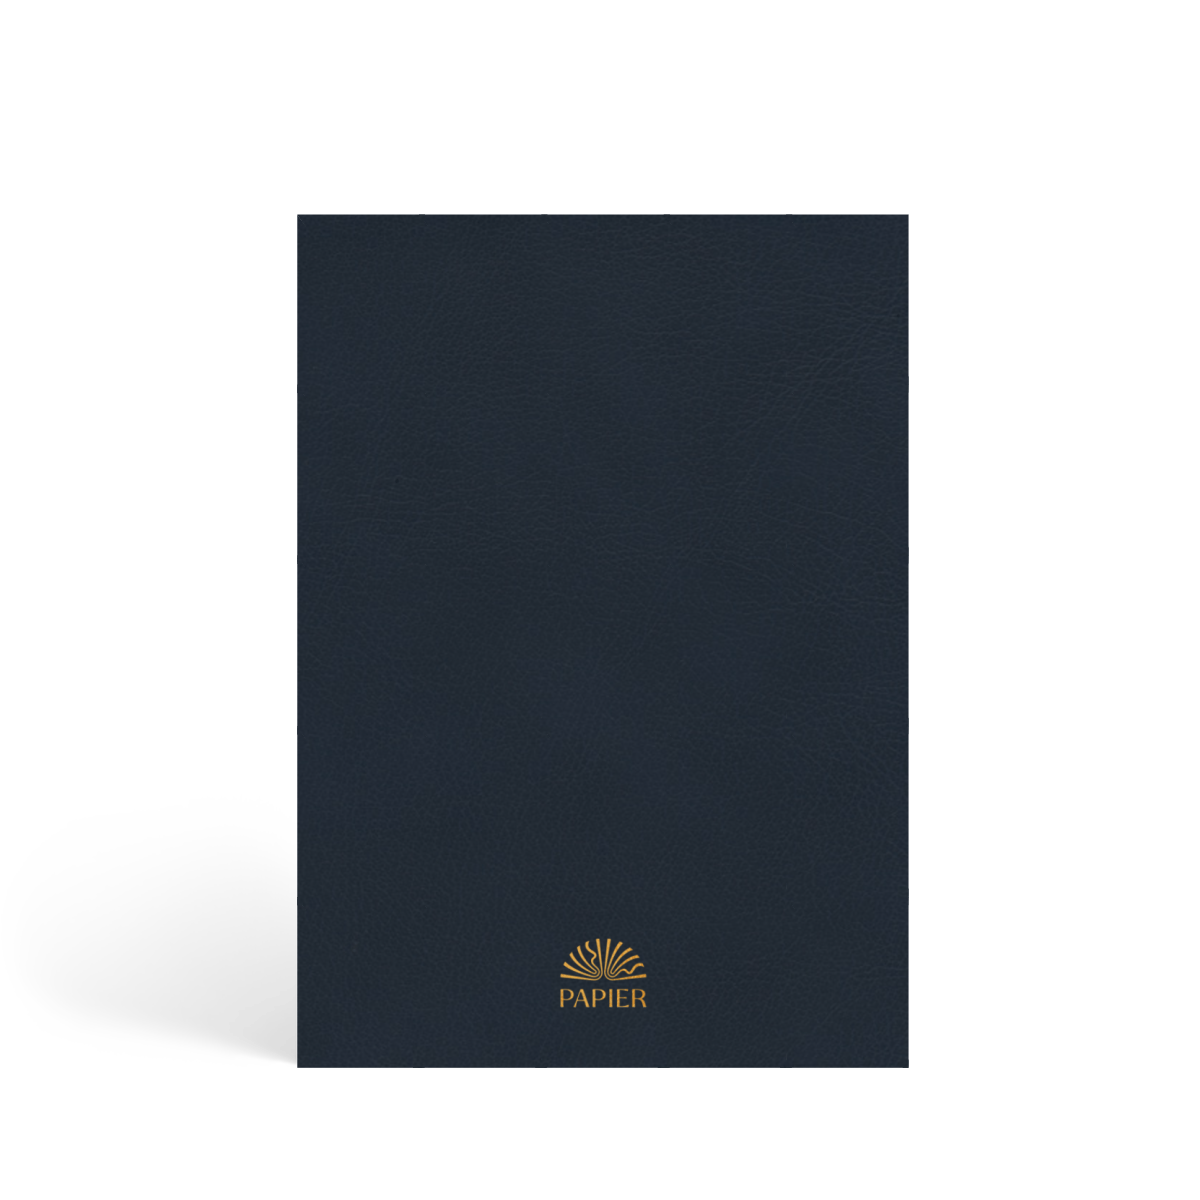 Https%3a%2f%2fwww.papier.com%2fproduct image%2f95527%2f5%2fnavy monogram 23948 back 1573495861.png?ixlib=rb 1.1